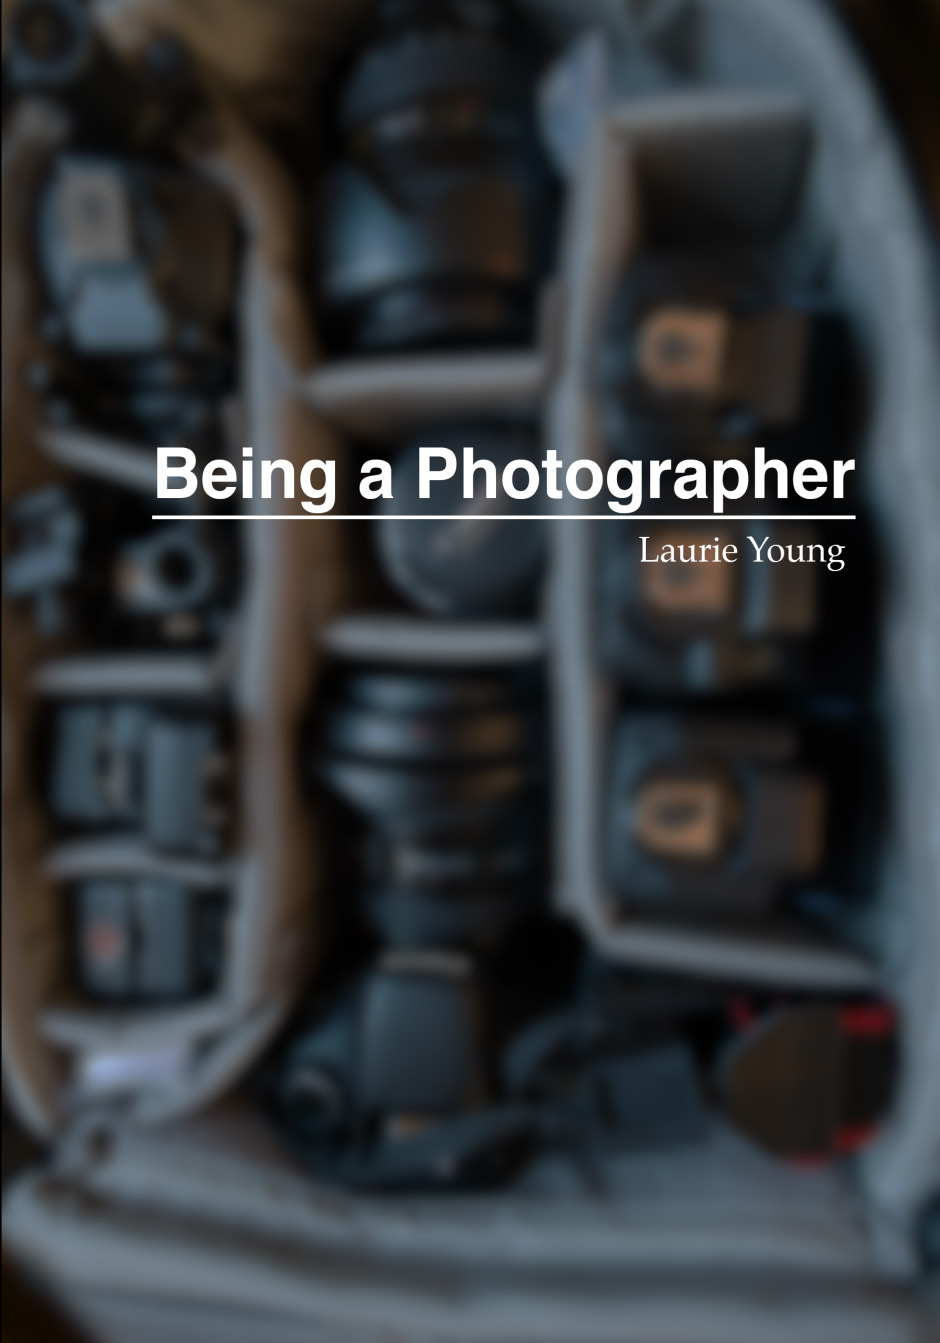 Being a Photographer by Laurie Young